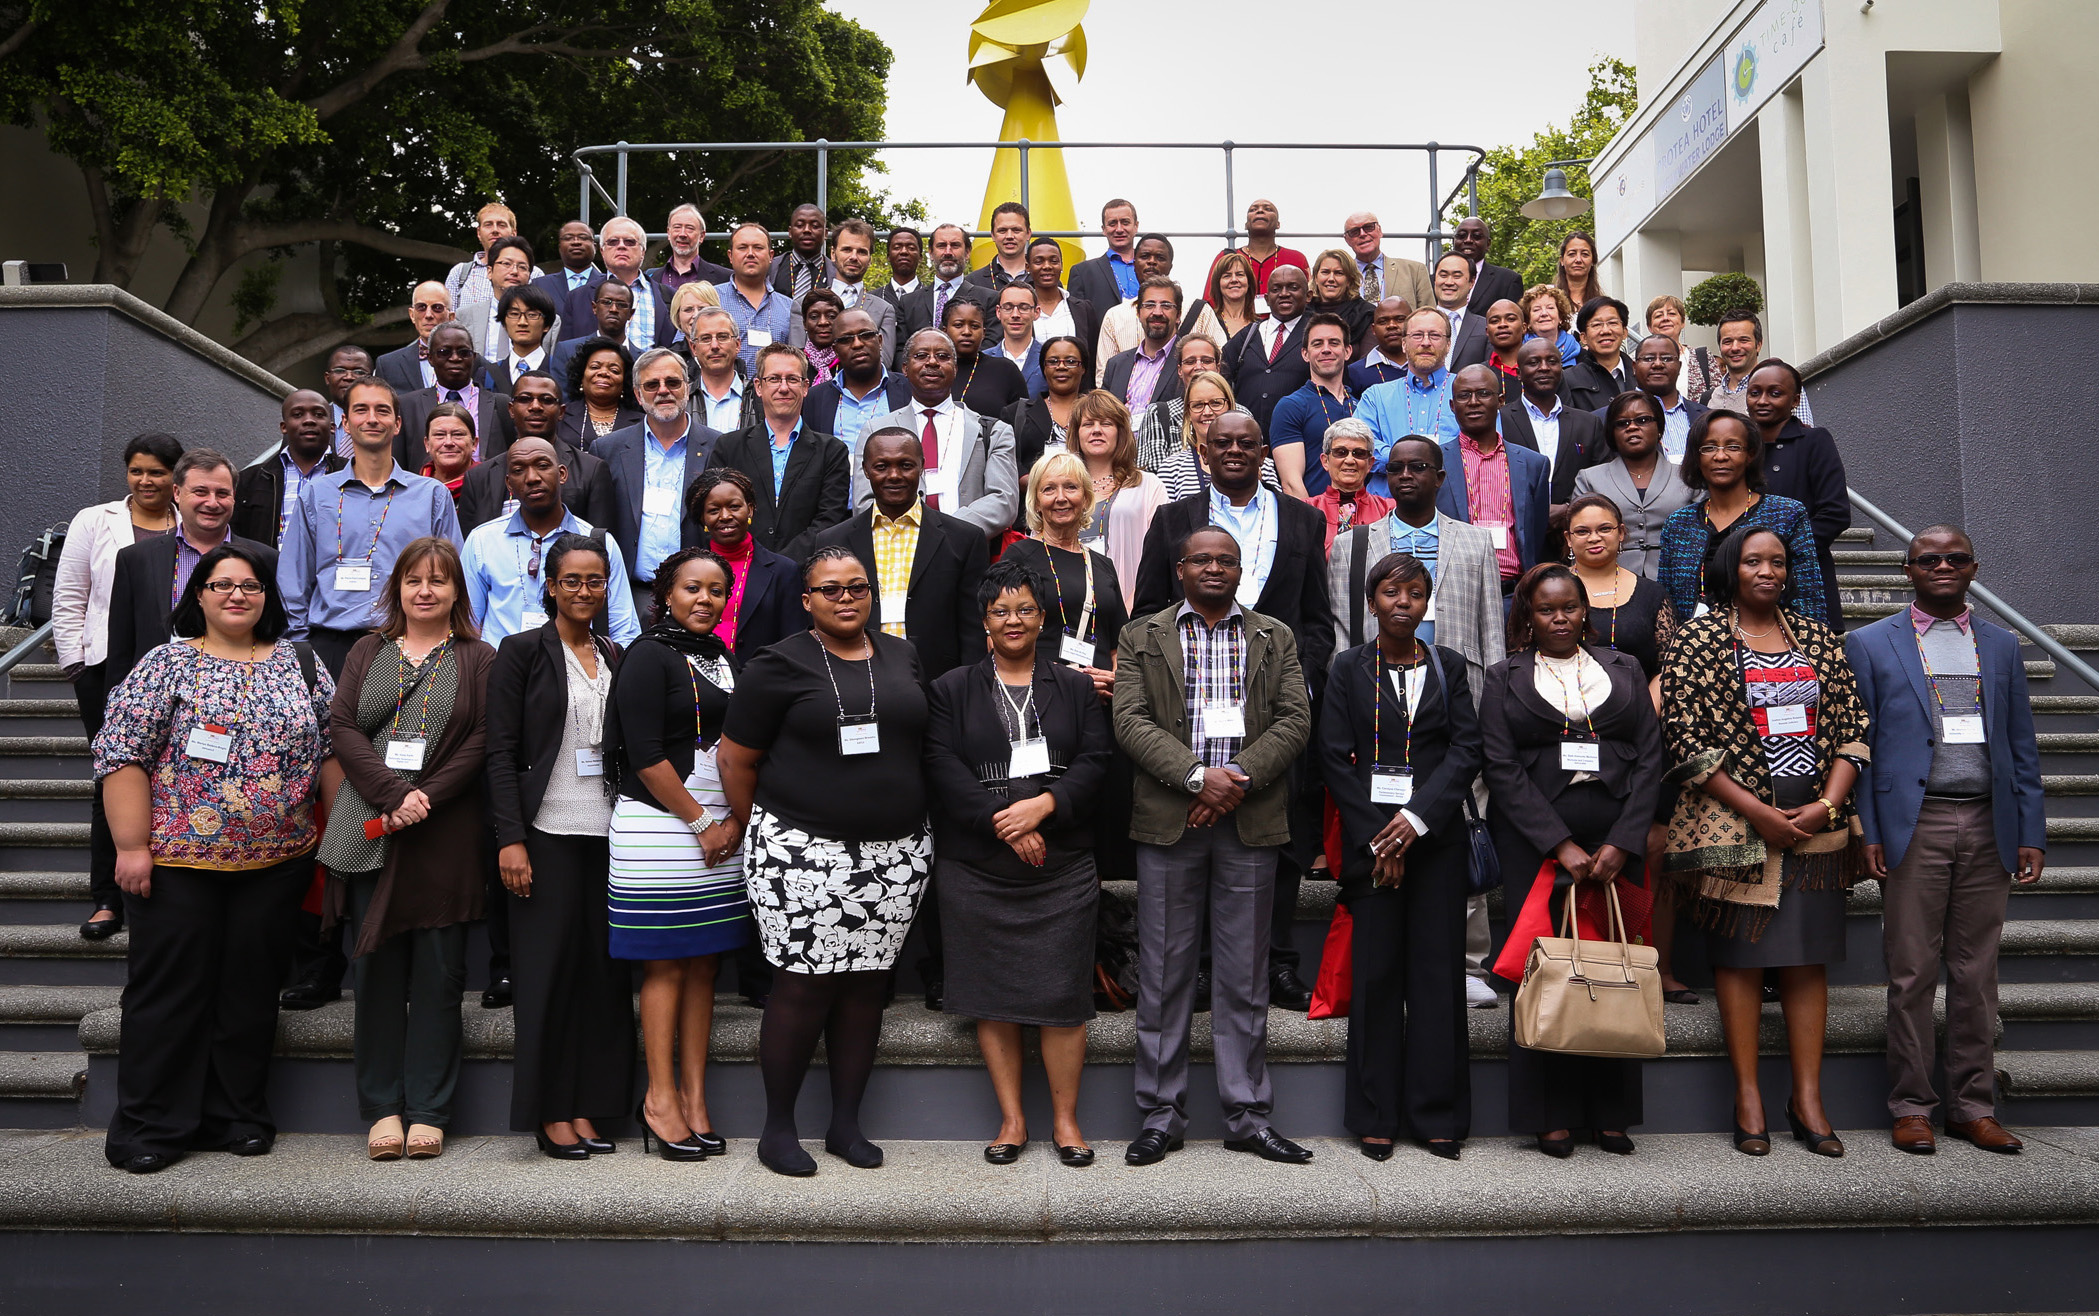 Group photo of 83 attendees from the Law Via the Internet Conference.